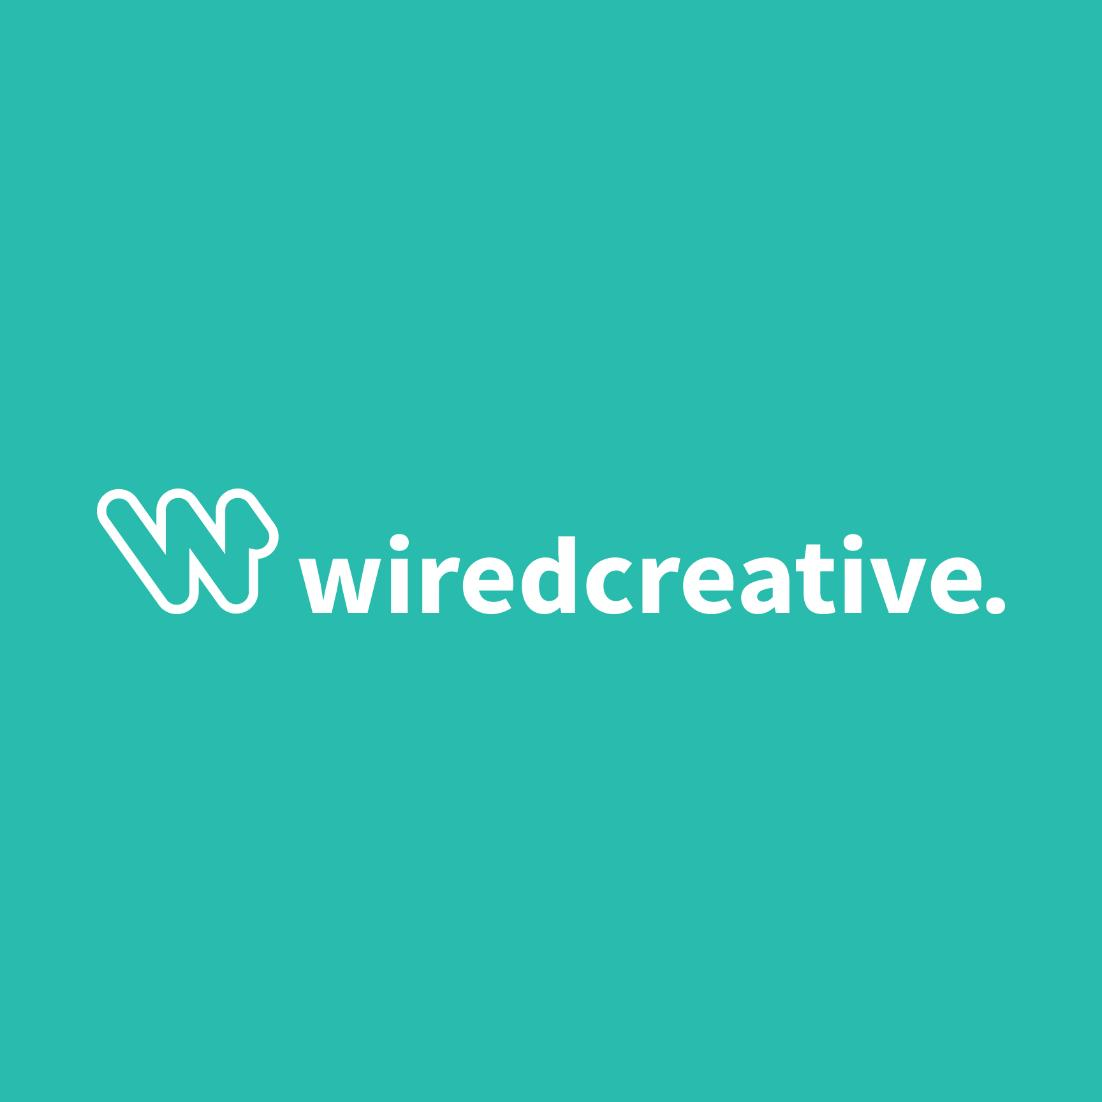 Wired Creative Bringing Art and Business Together Right Here in Hastings! Take a look at their feature page here 👉 https://t.co/6D8nkiyFtN  #Hastings #ThebestofHastings #Buylocal #TBOHastings #Bexhill #Rye #Battle https://t.co/sFPl6RYkye